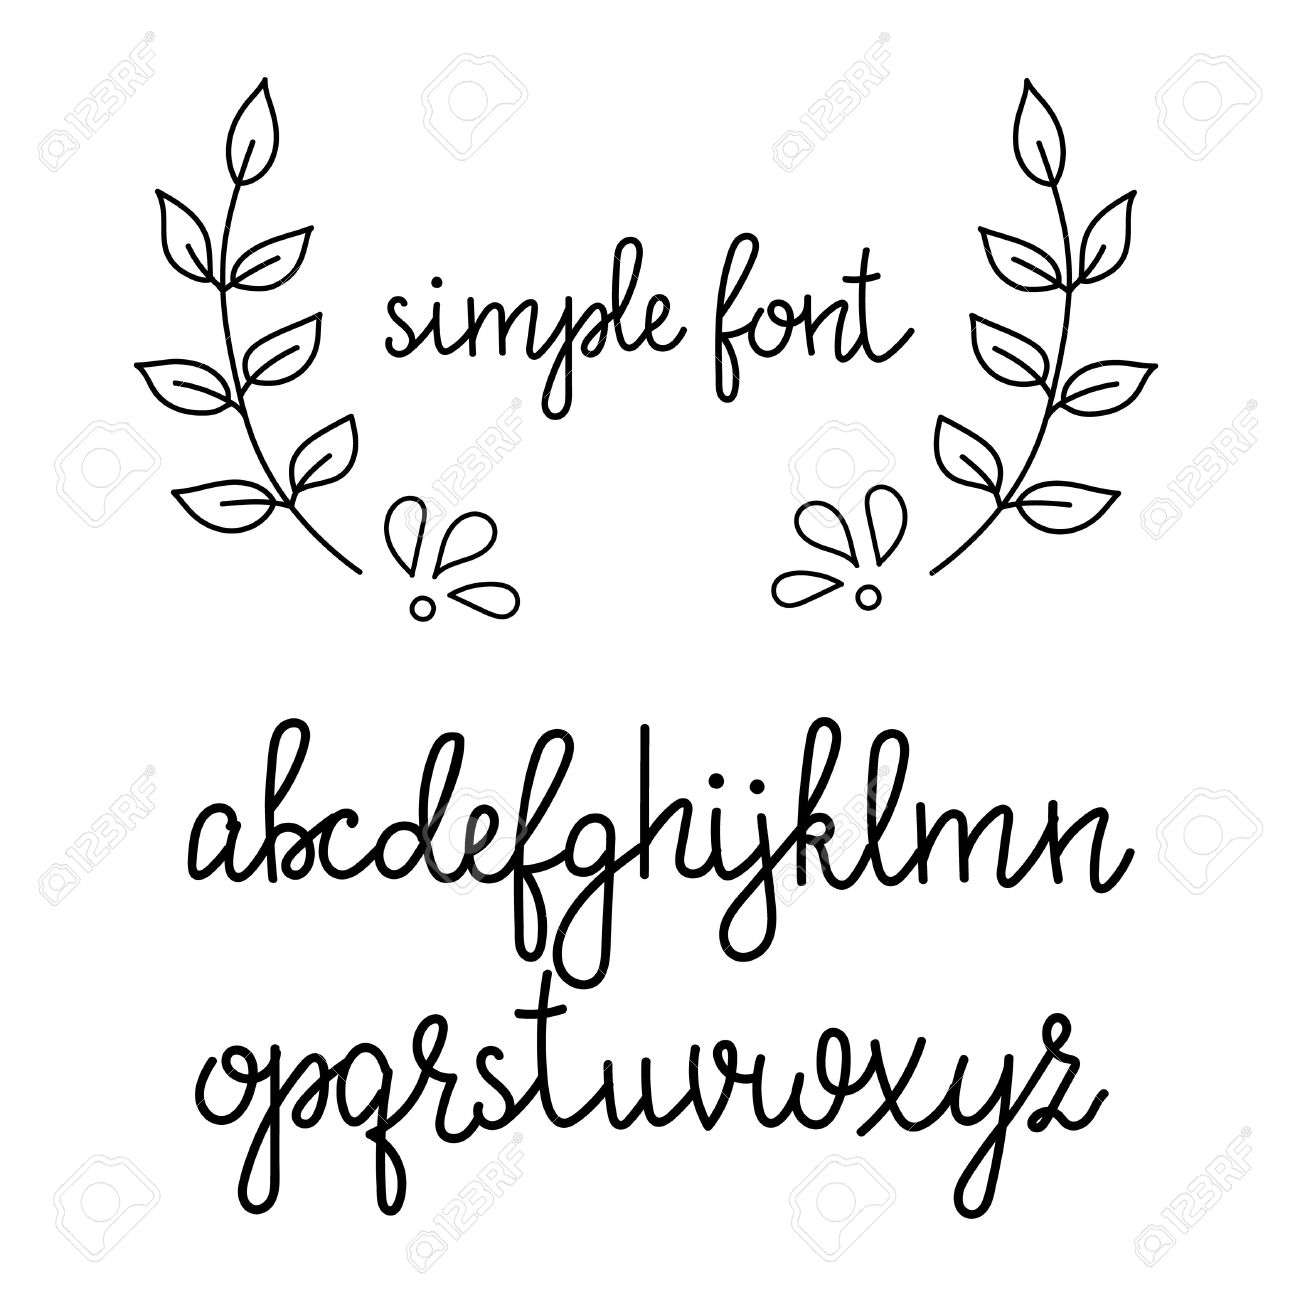 6 390 cursive font cliparts stock vector and royalty free cursive